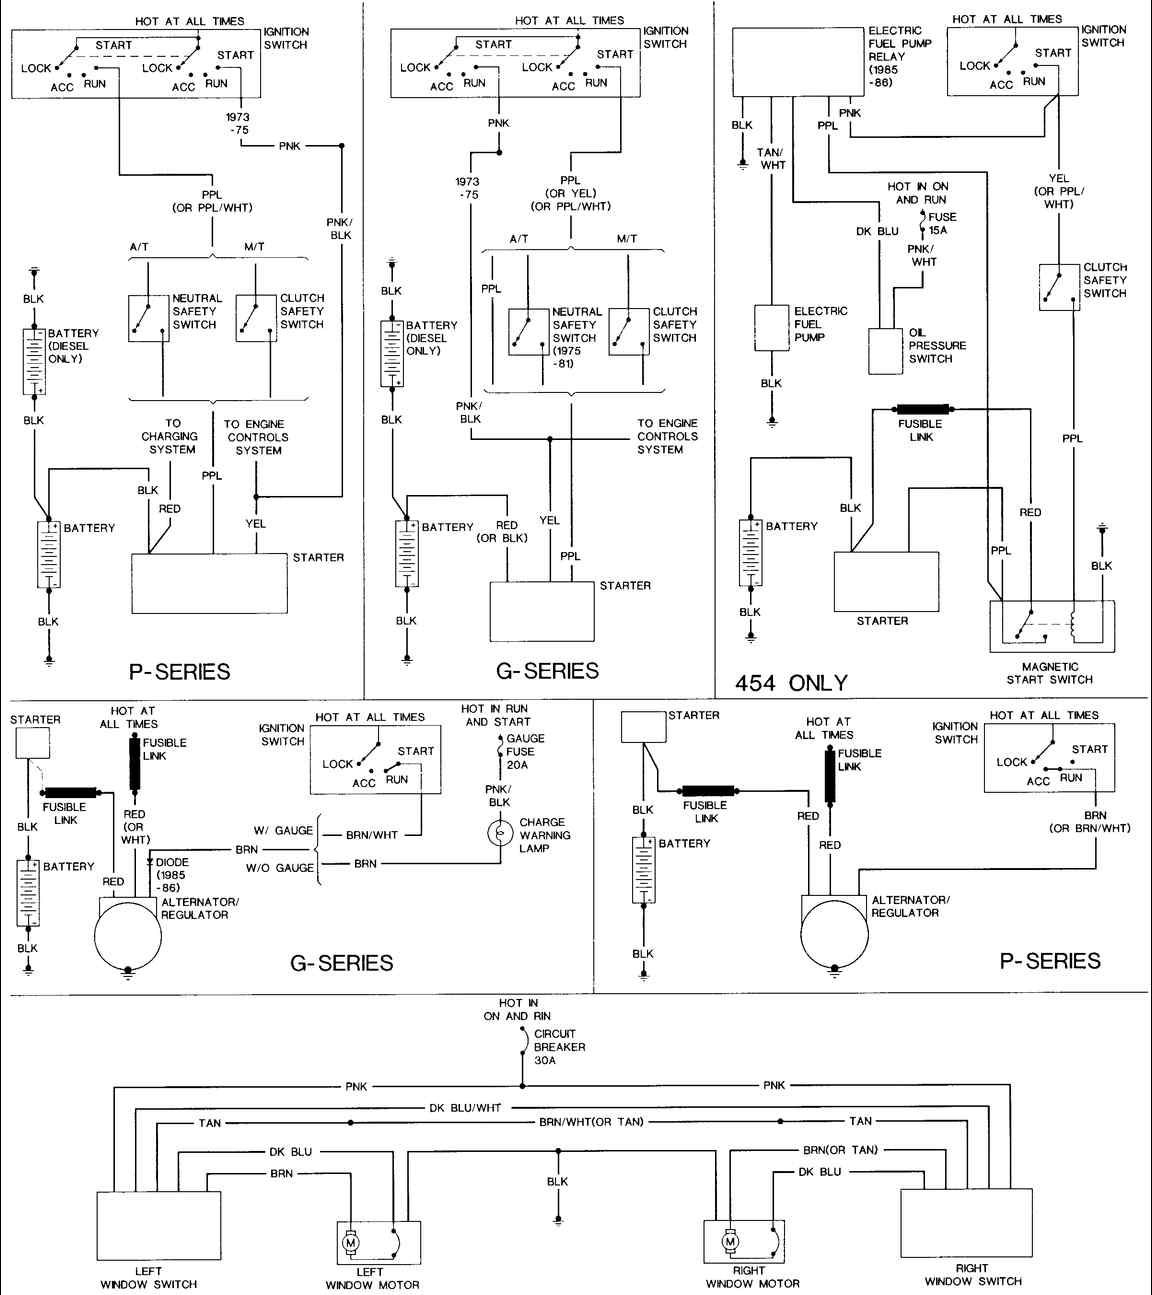 0c73623a181dc376dbb4777e2029d285 85 chevy truck wiring diagram 85 chevy van the steering column  at readyjetset.co